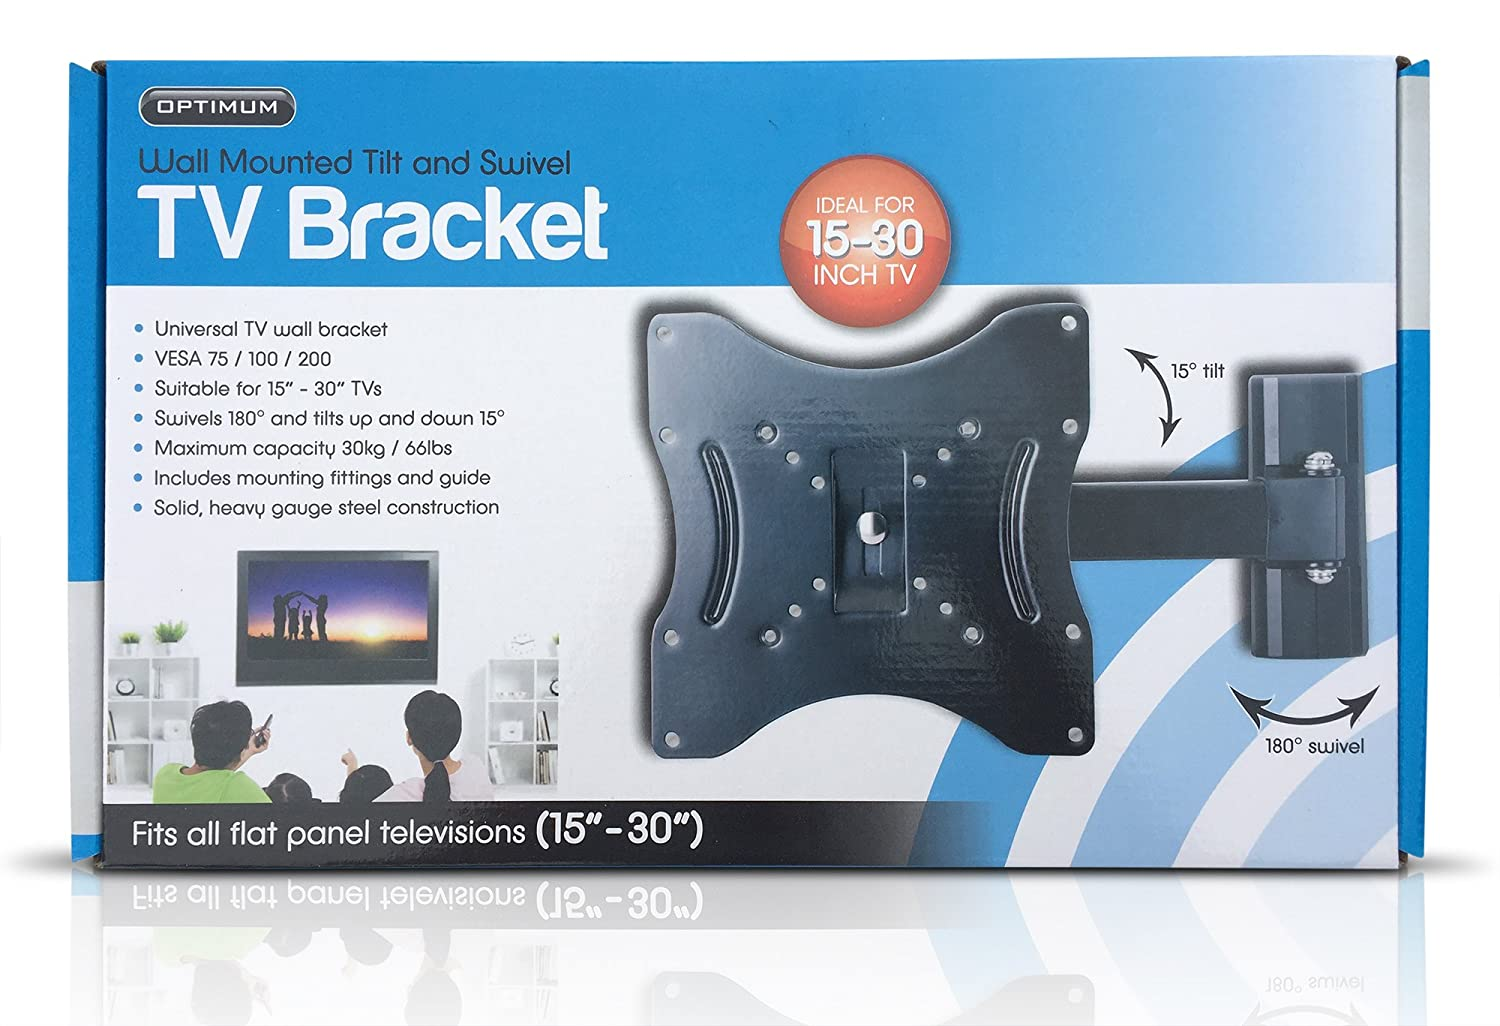 Optimum Wall Mounted Tilting TV Bracket with: Amazon co uk